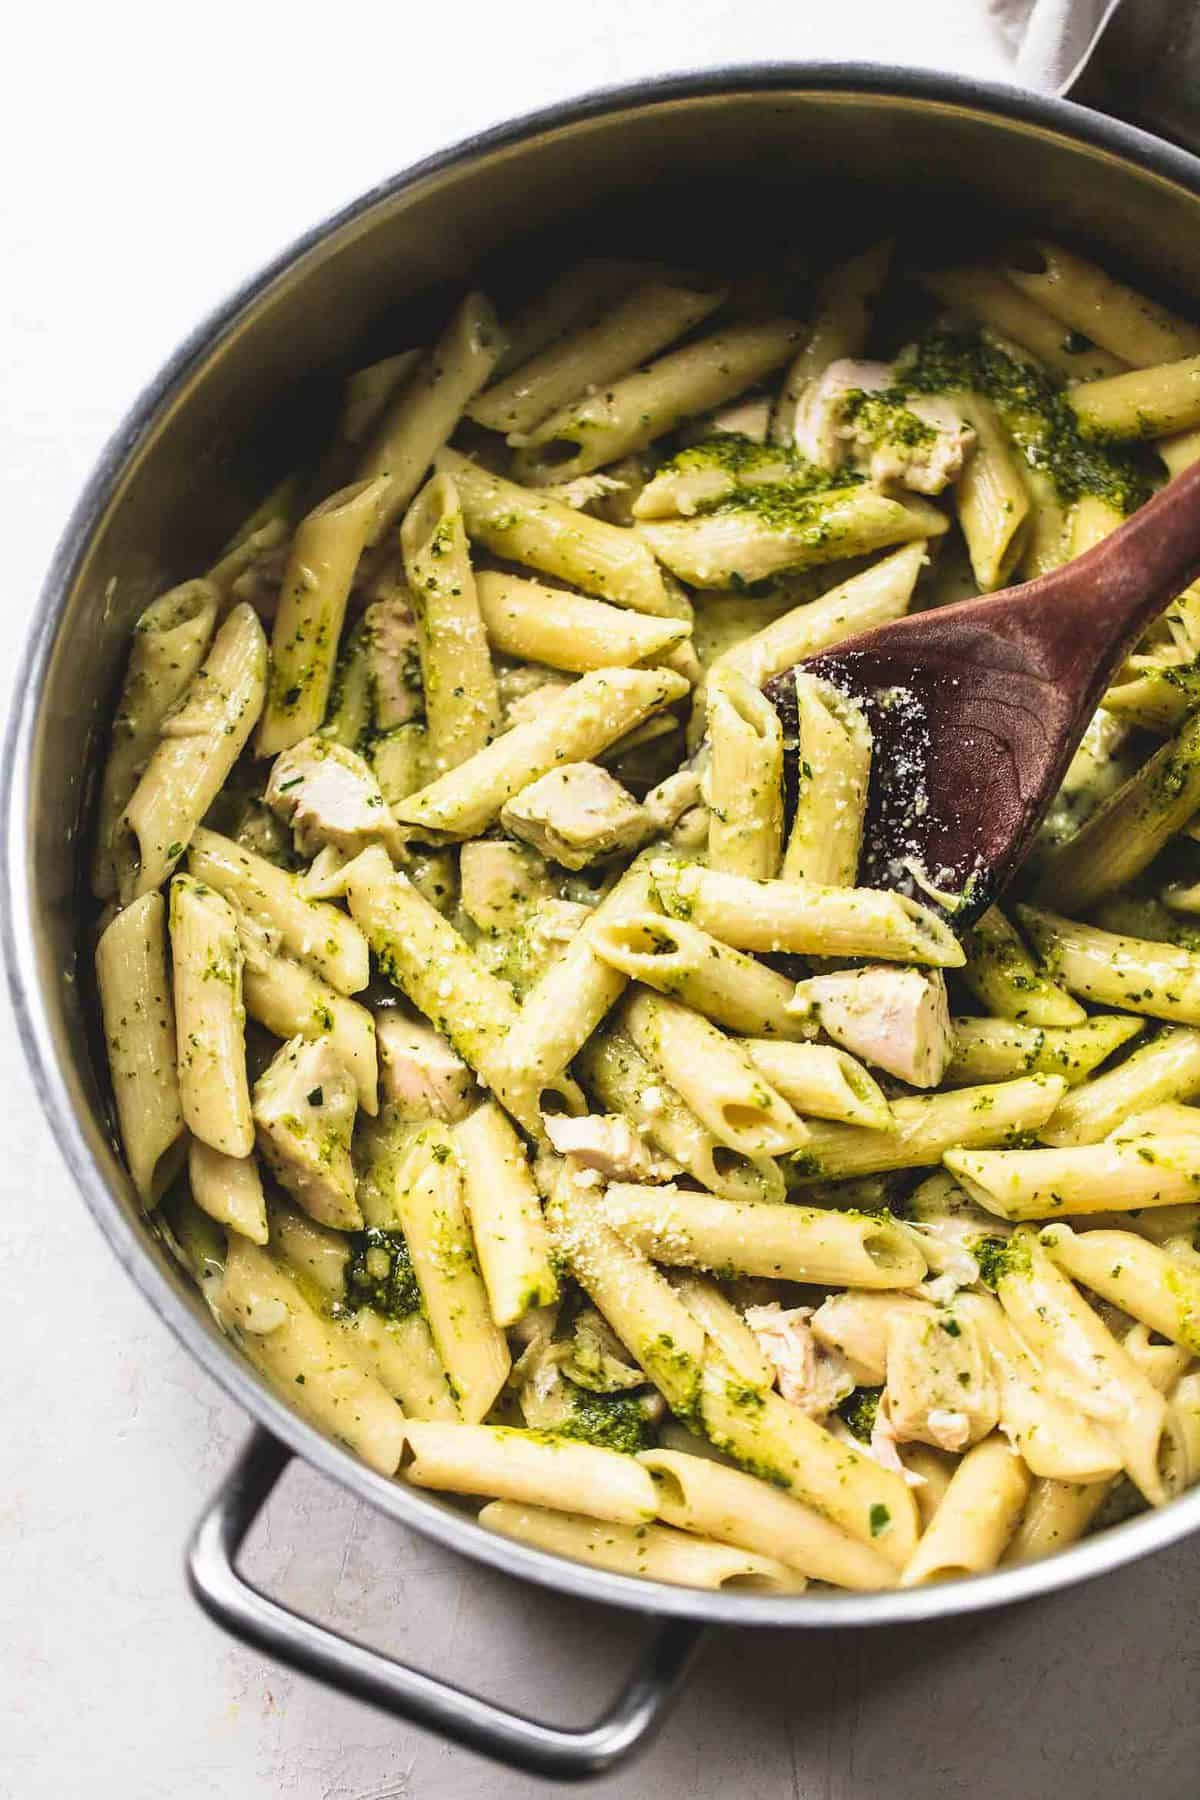 This One Pot Creamy Pesto Chicken Pasta Is A No Muss No Fuss Flavorful Recipe That Uses Creamy Pesto Chicken Pasta Pesto Chicken Pasta Pesto Pasta Recipes